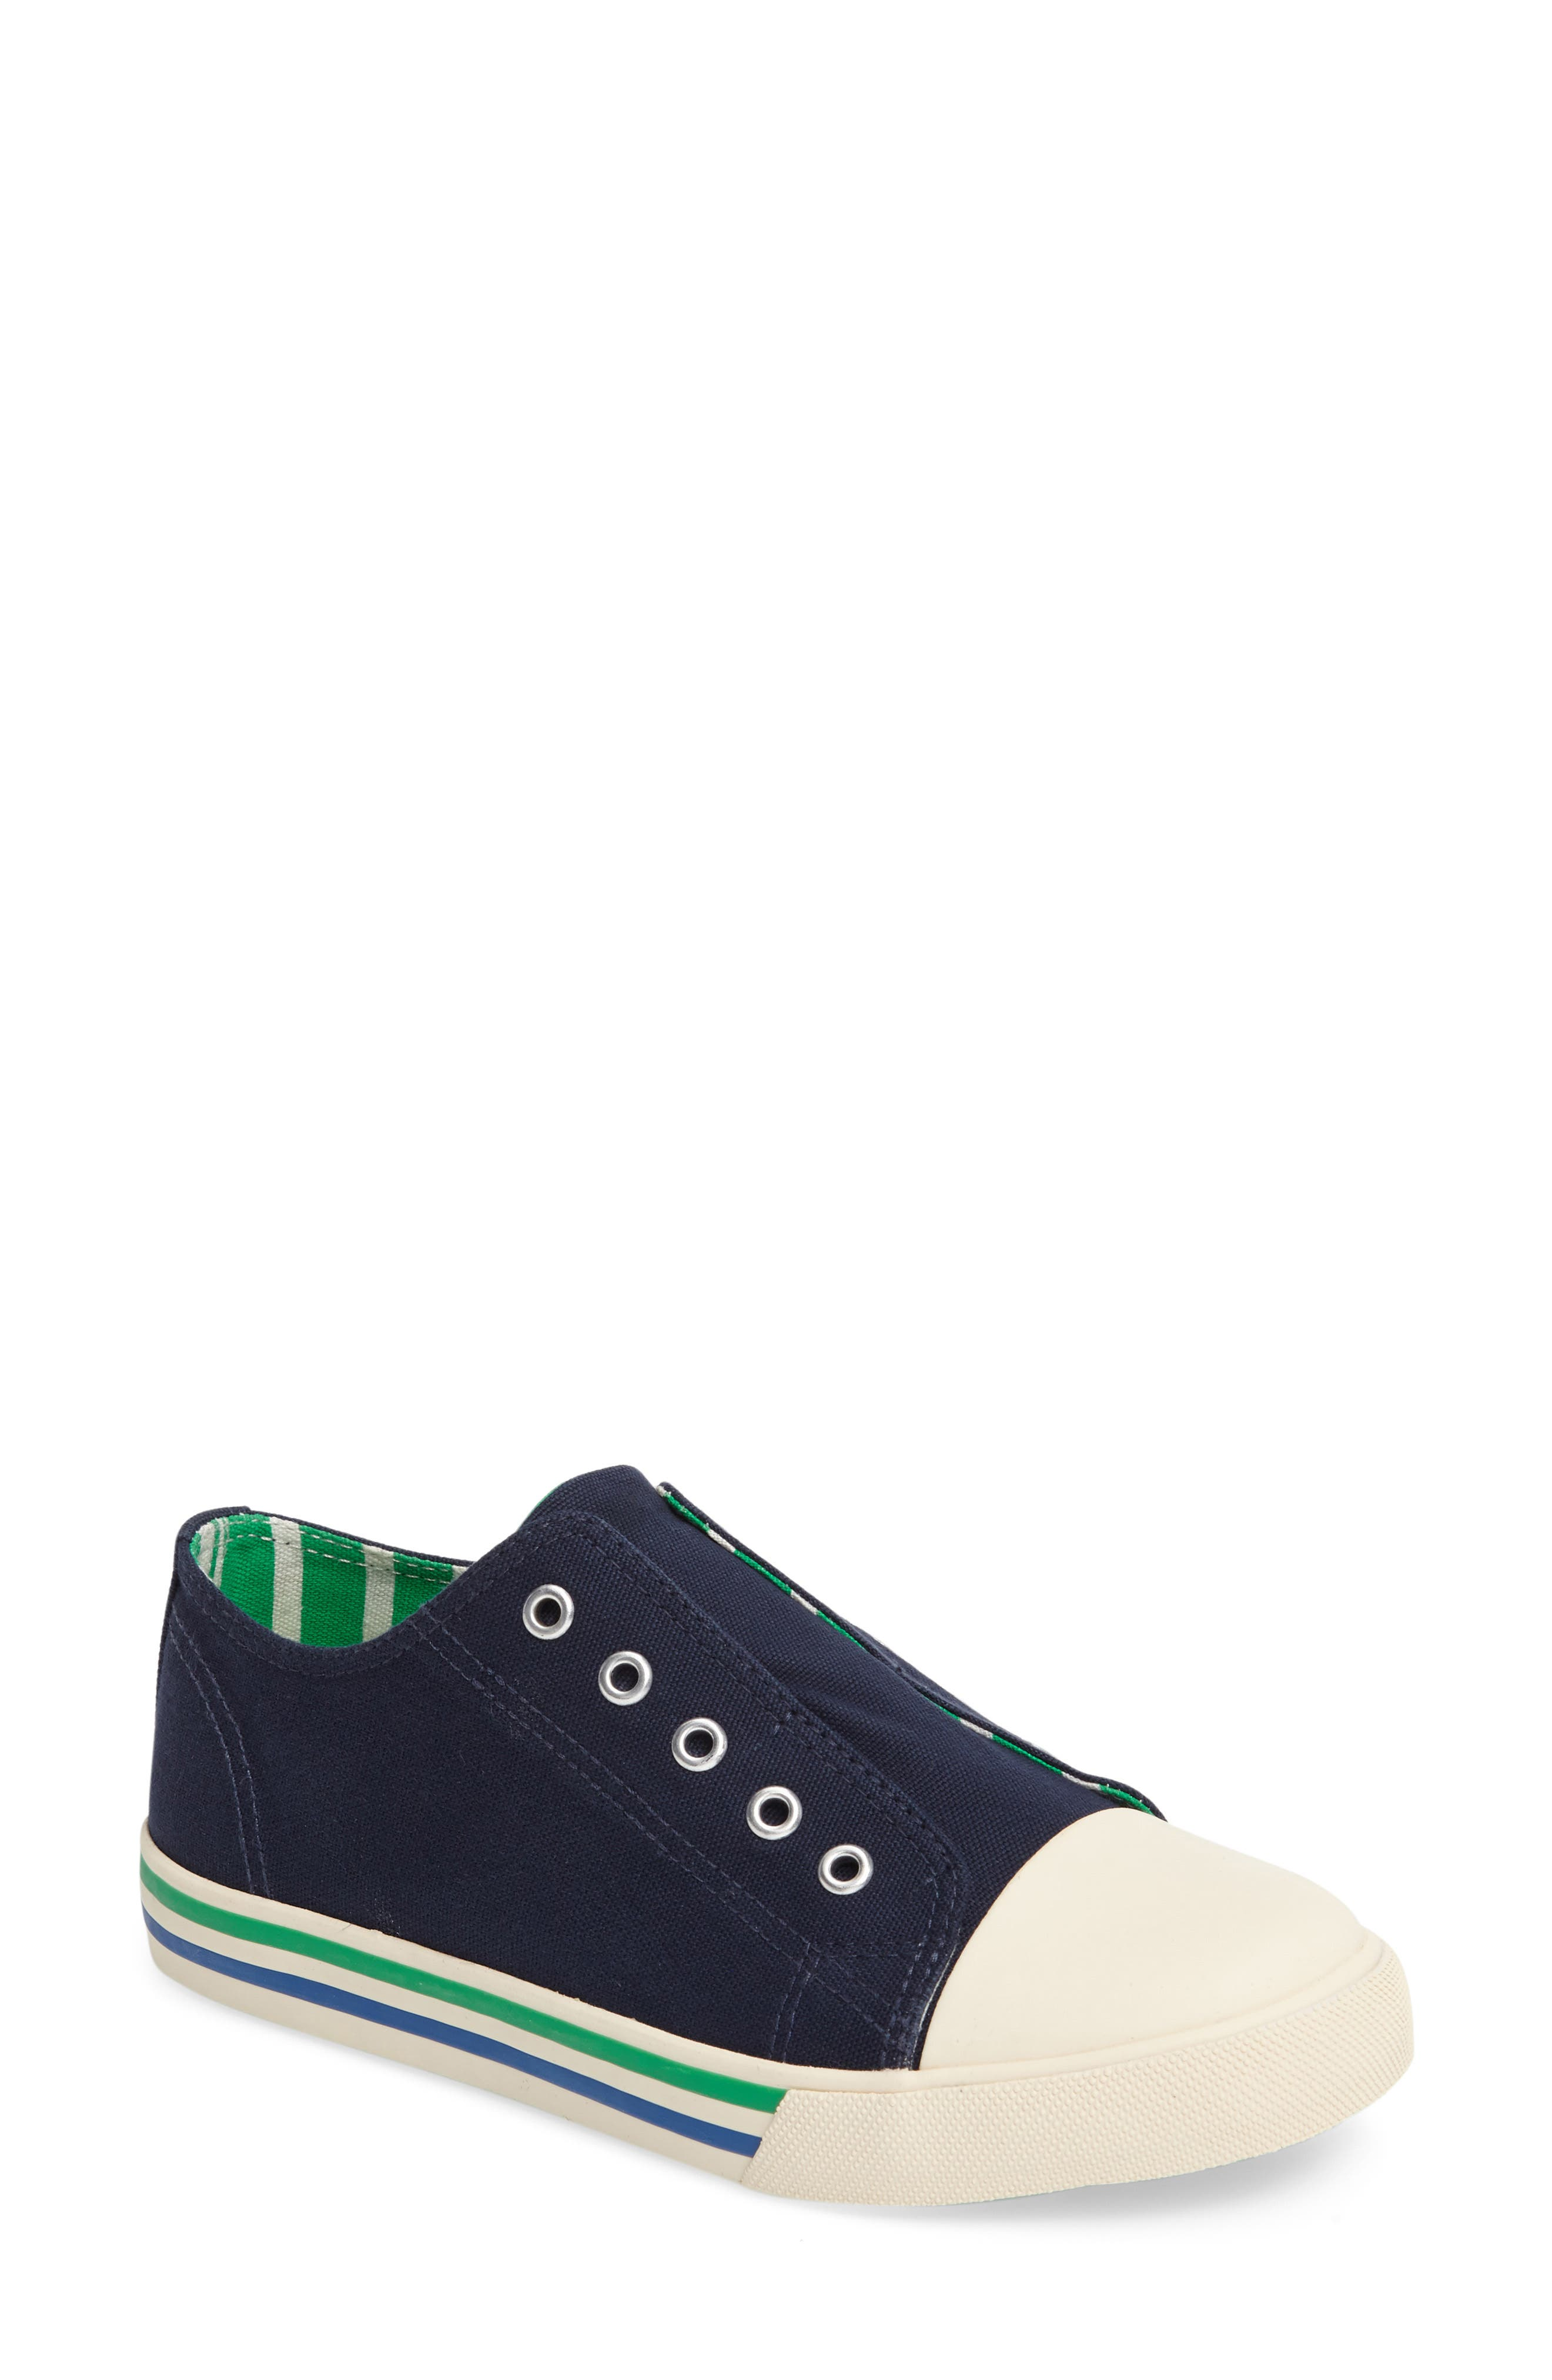 Mini Boden Laceless Sneaker (Toddler, Little Kid & Big Kid)